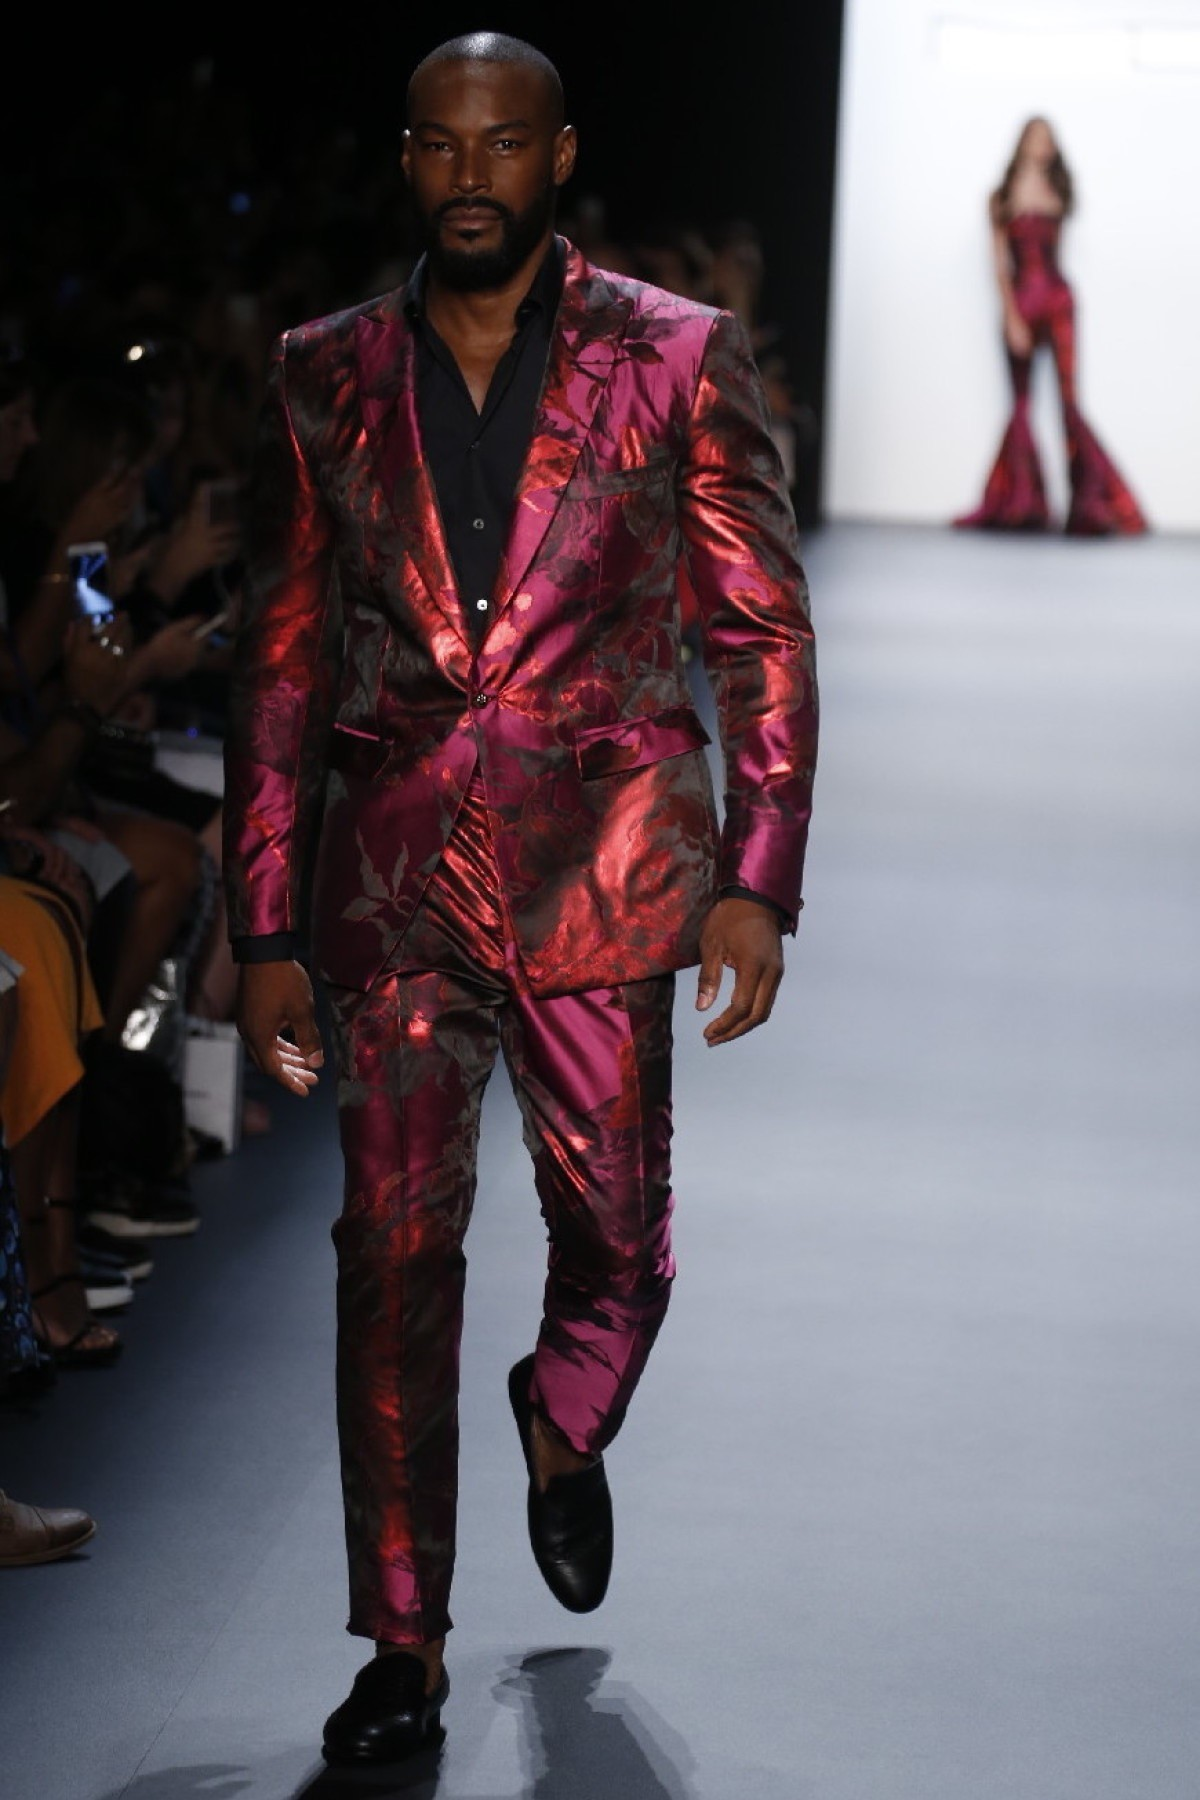 Tyson Beckford on the runway for Michael Costello, Taken from    NYFW.com